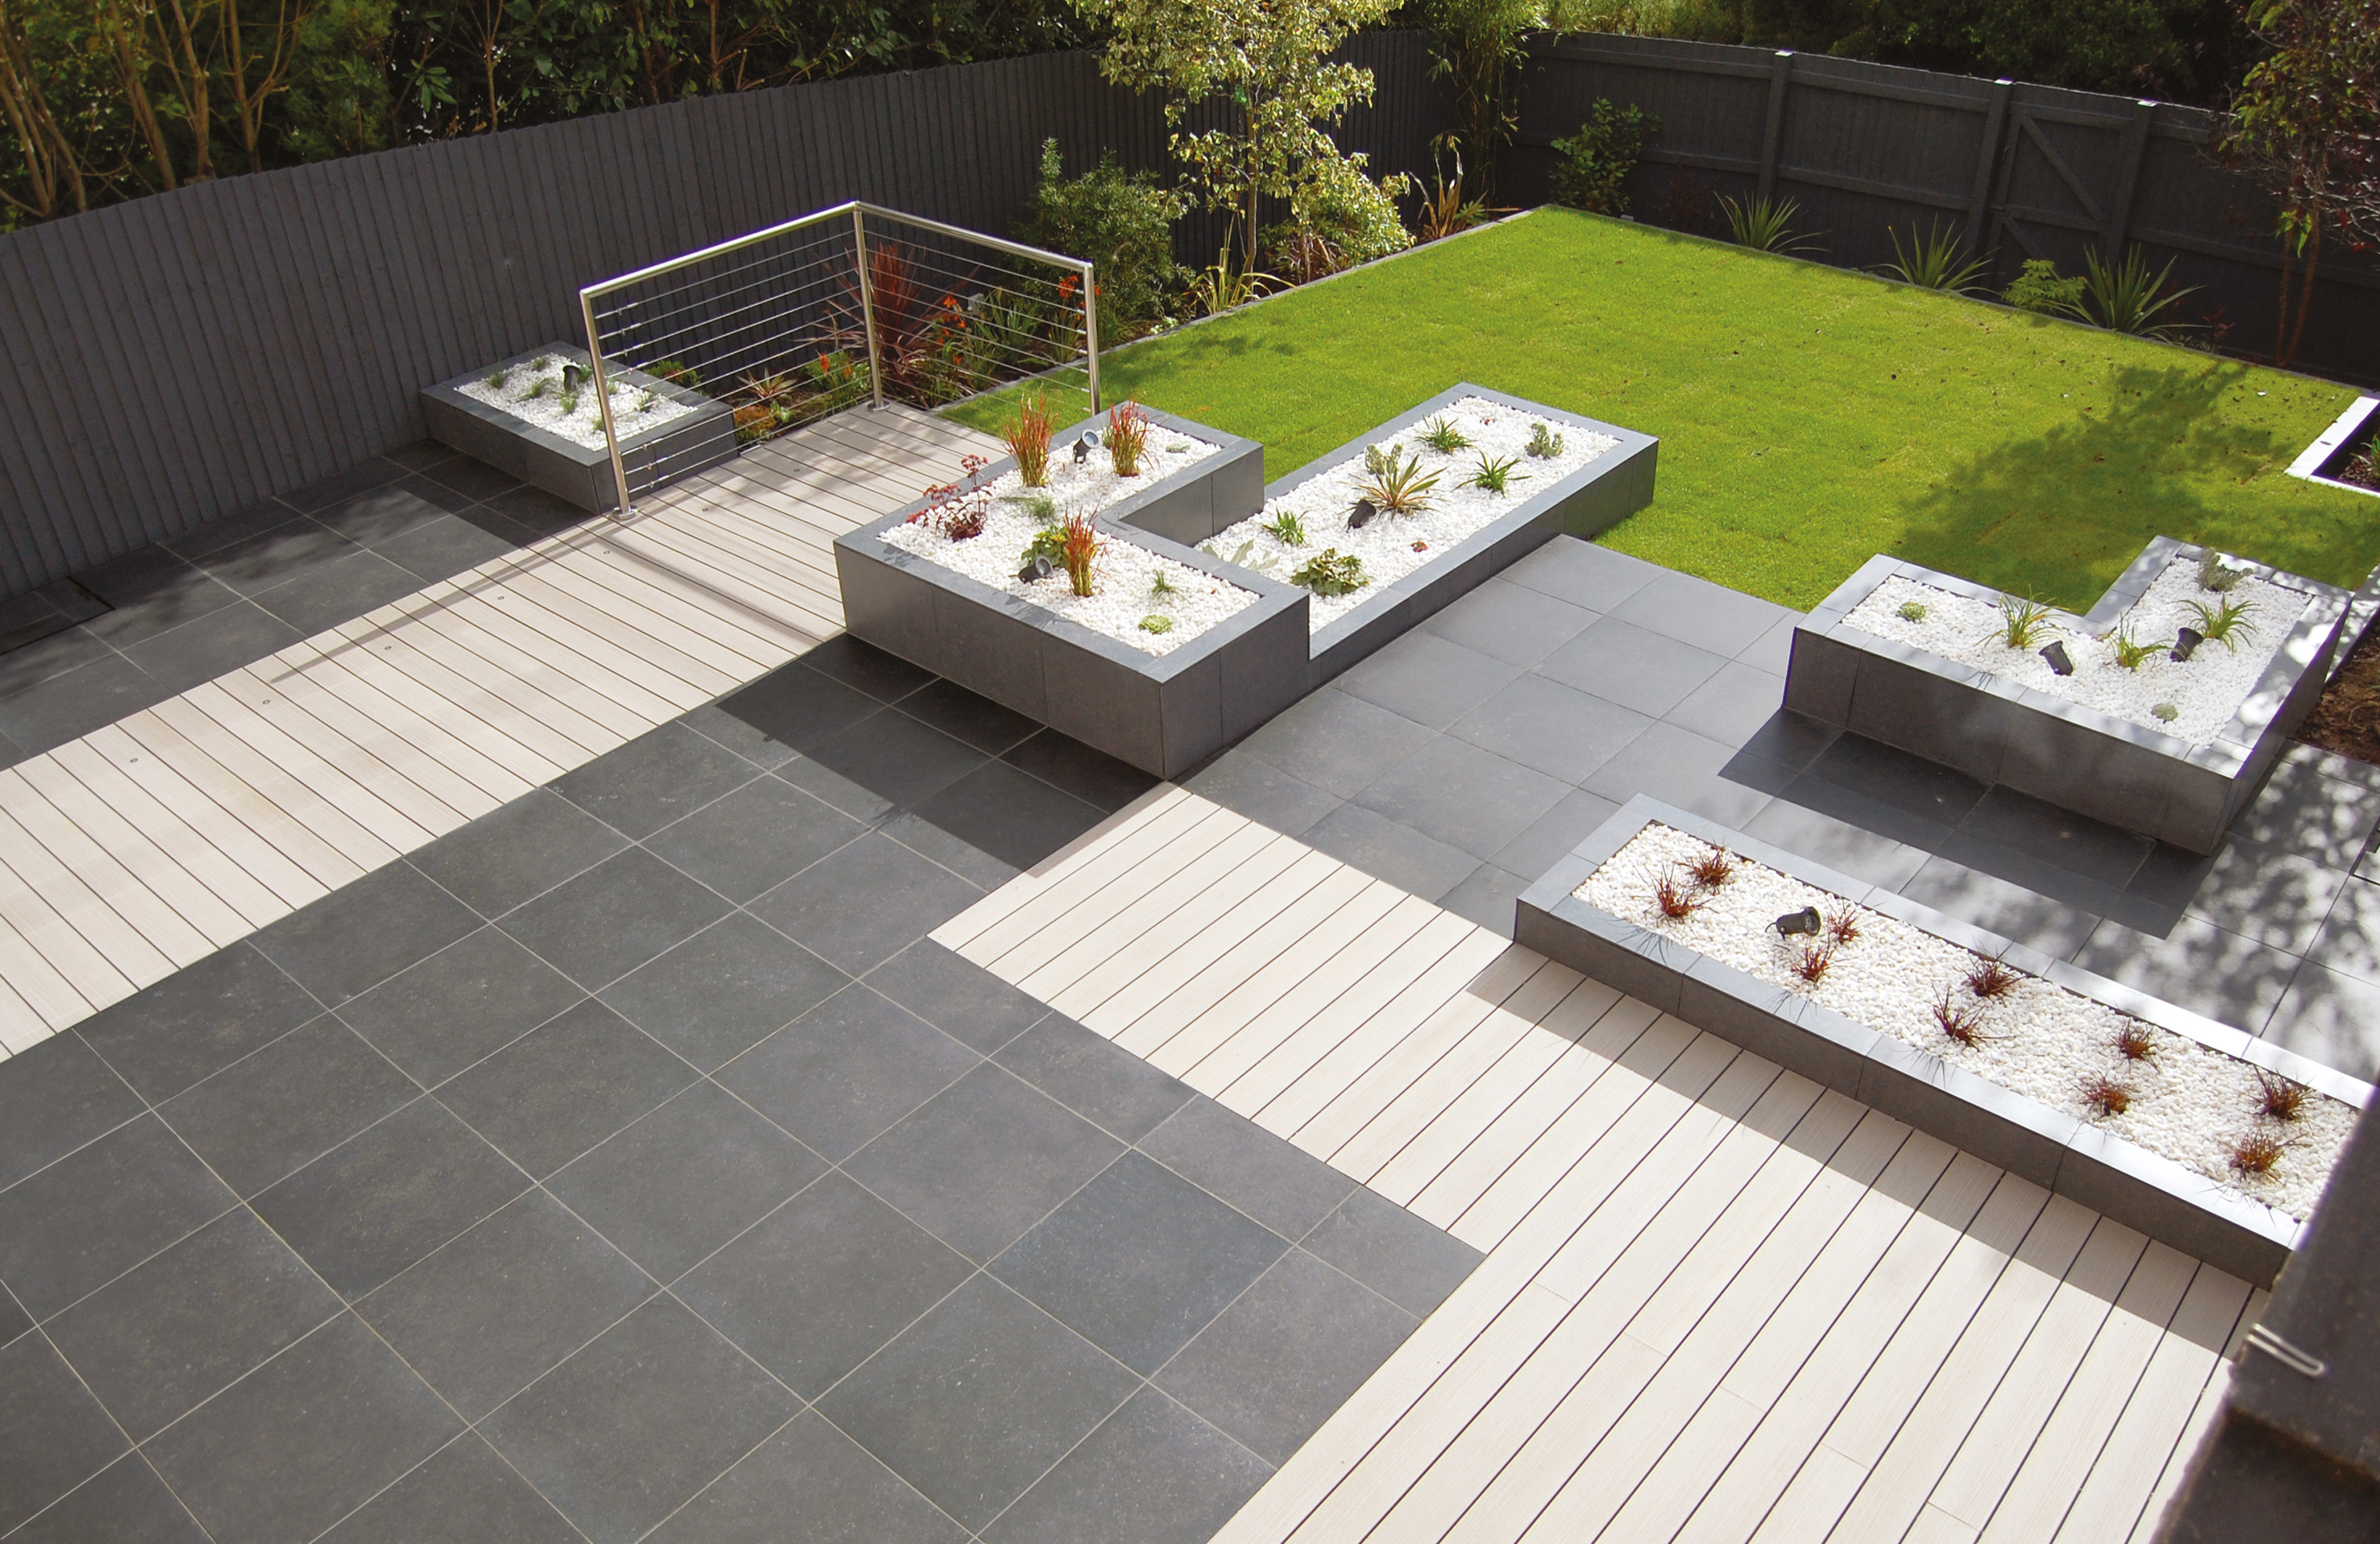 Outdoor Tile Designs: Inspiration for Your Garden